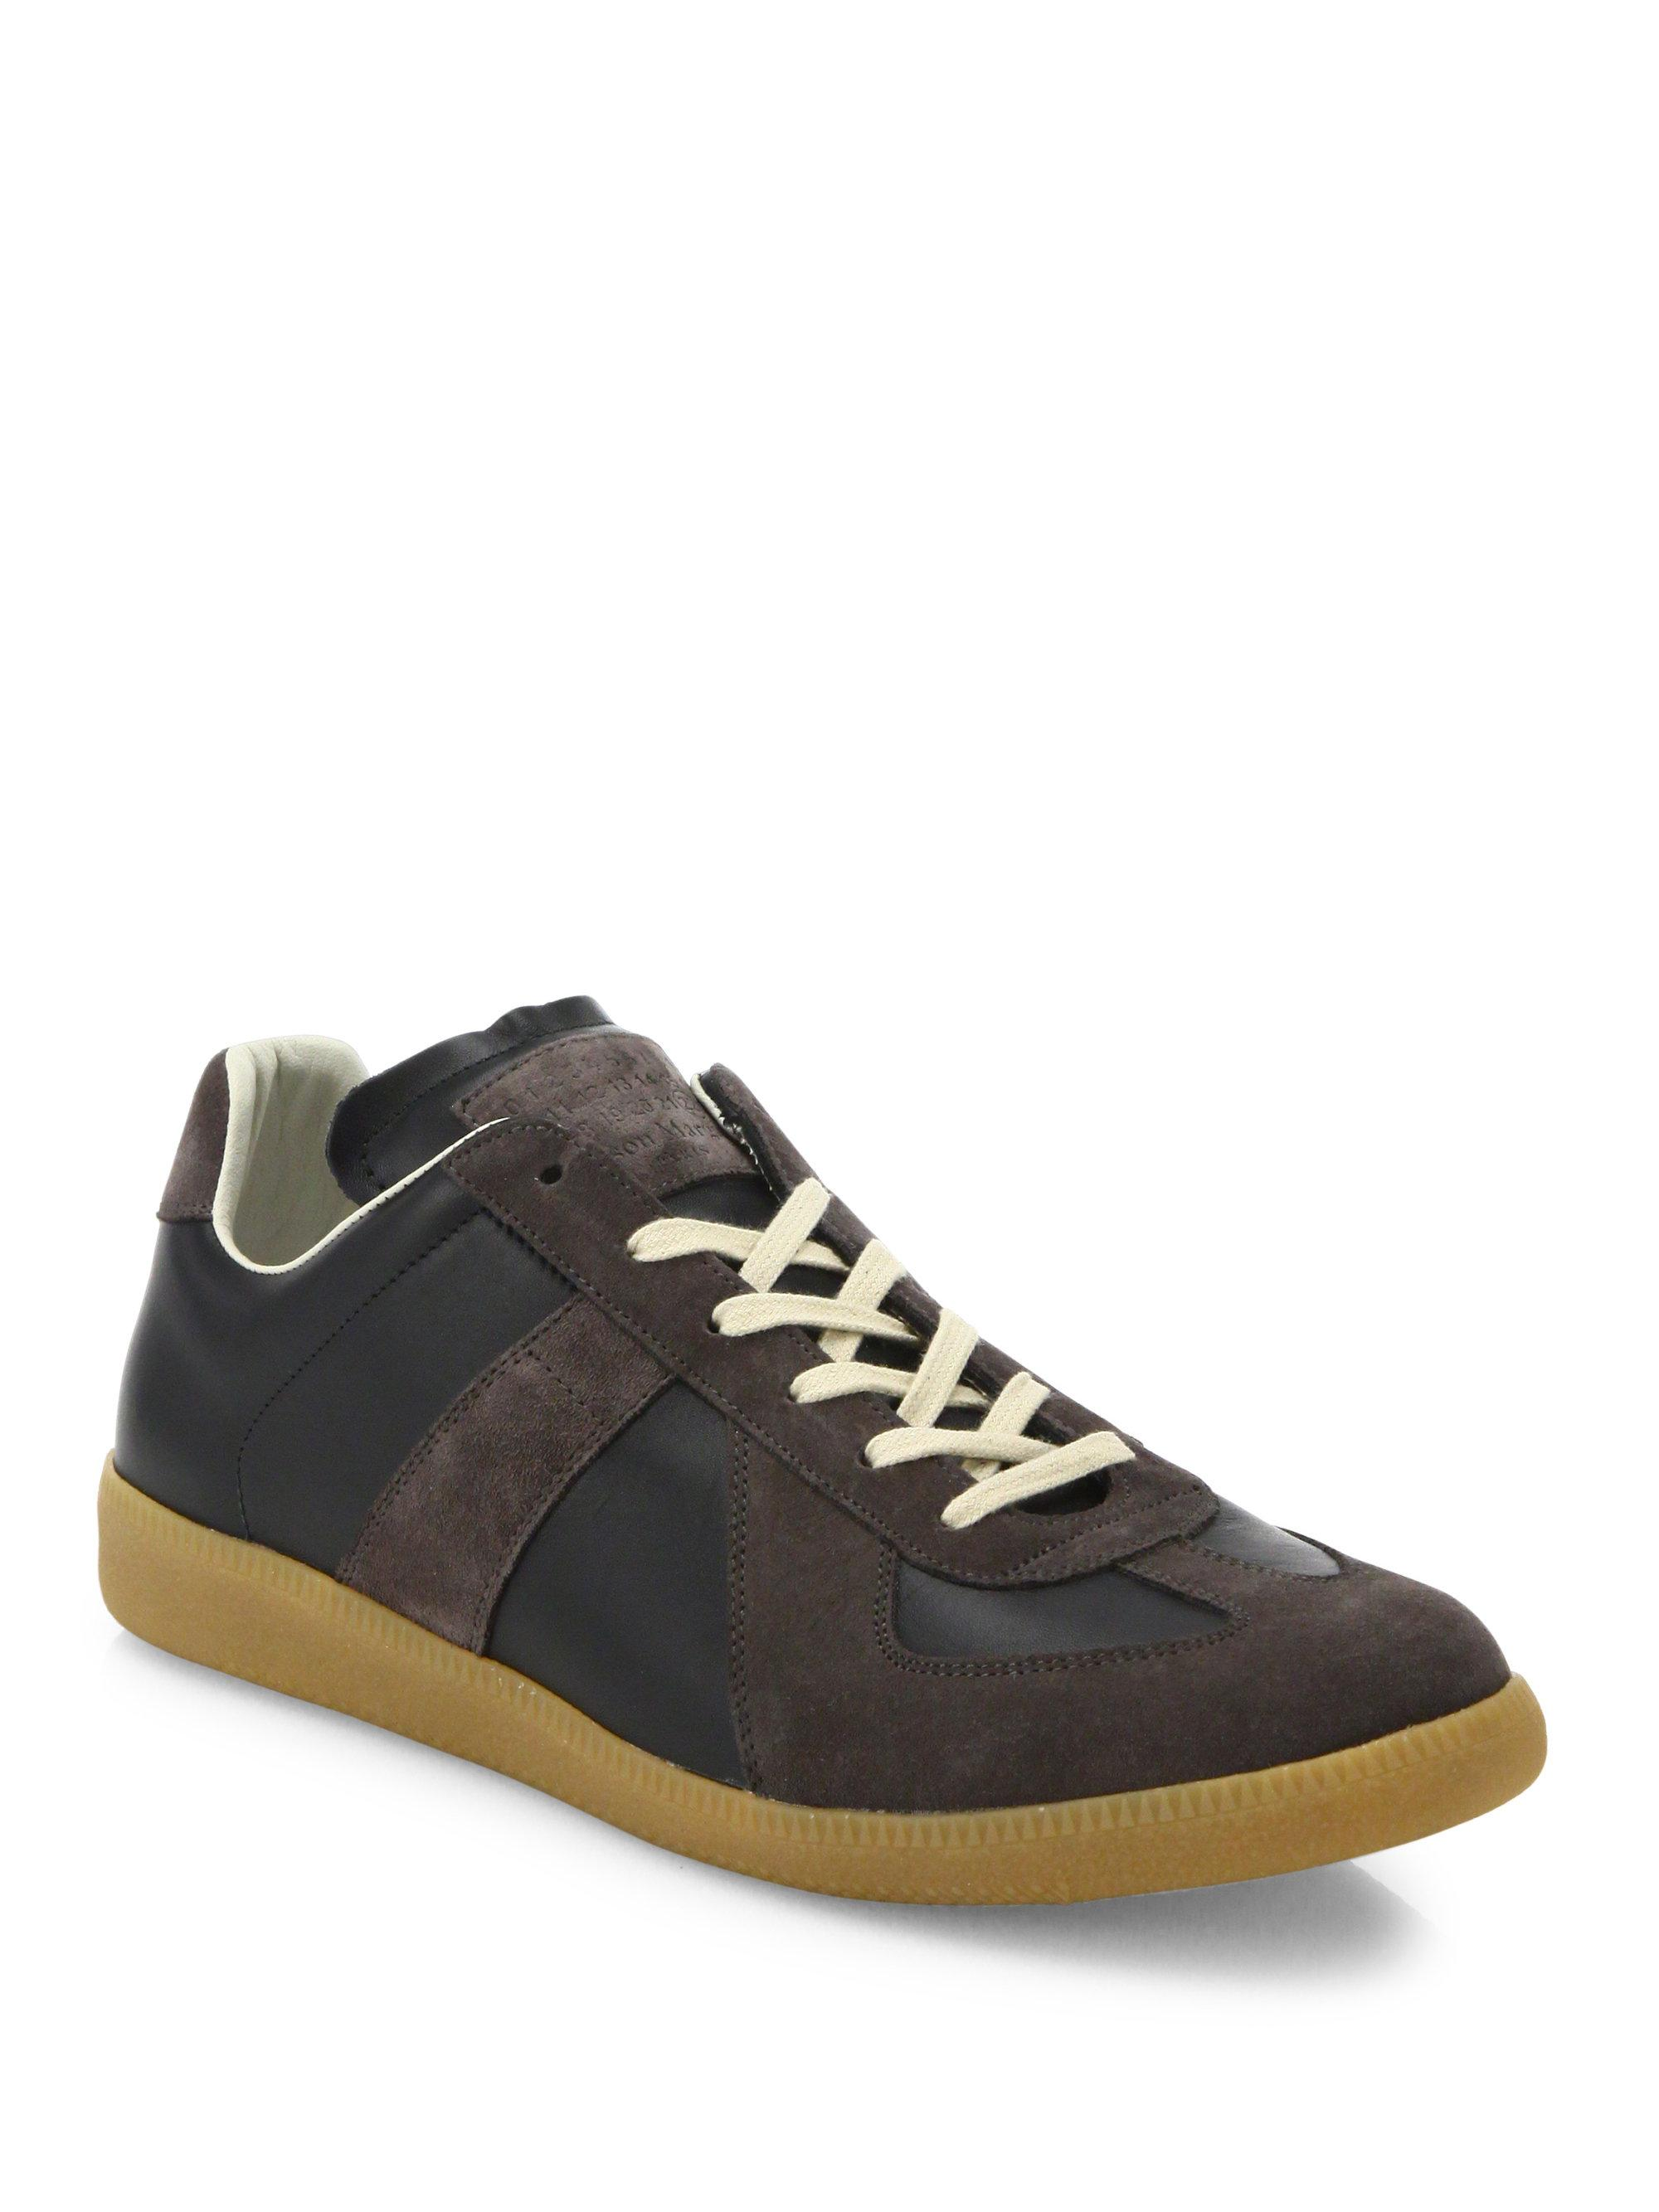 Maison MargielaReplica Suede Lace-Up Sneakers